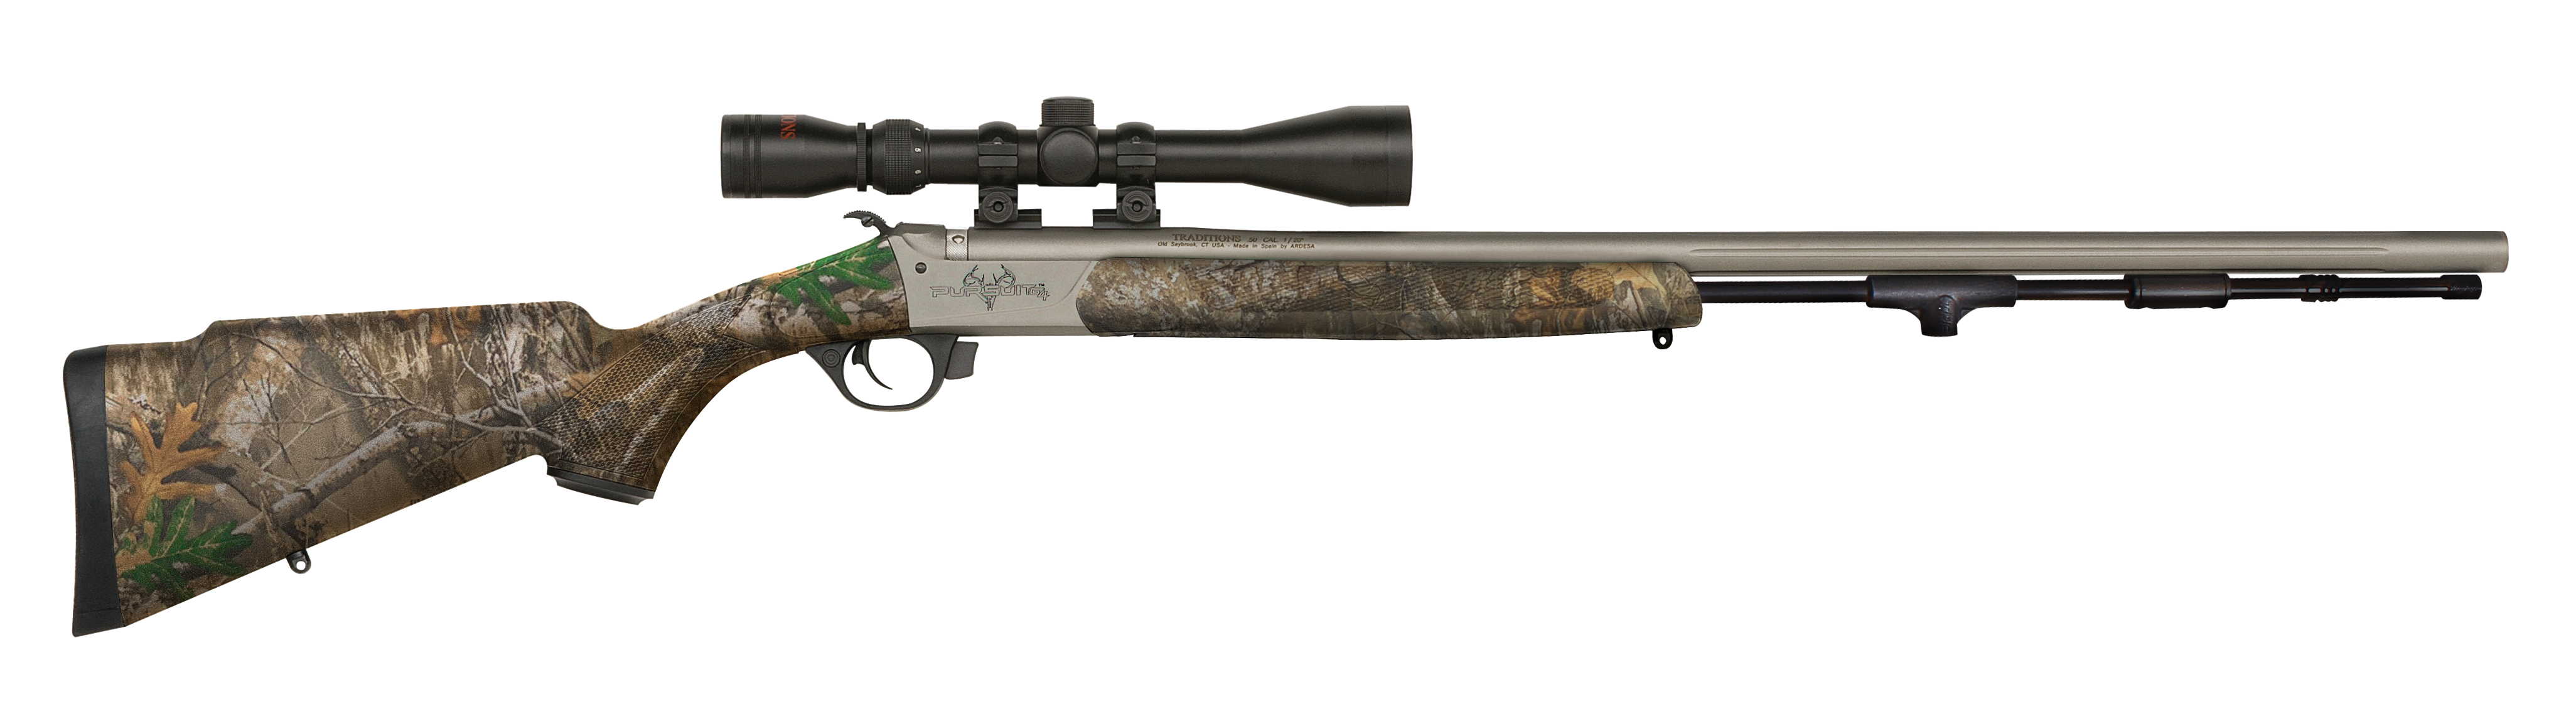 Traditions PERSUIT G4 ULTRALIGHT 50 CALIBER